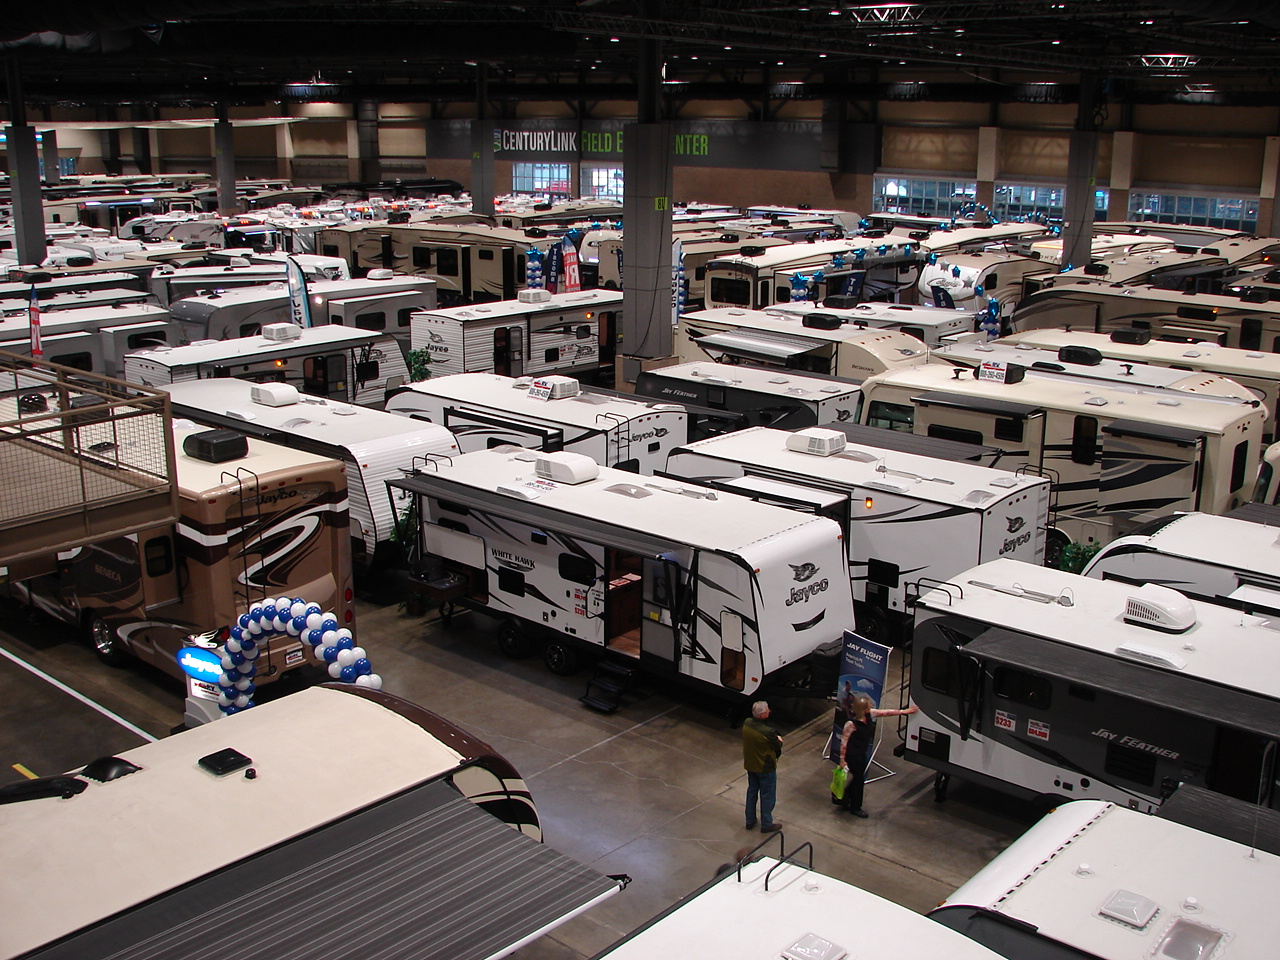 Hundreds of RVs